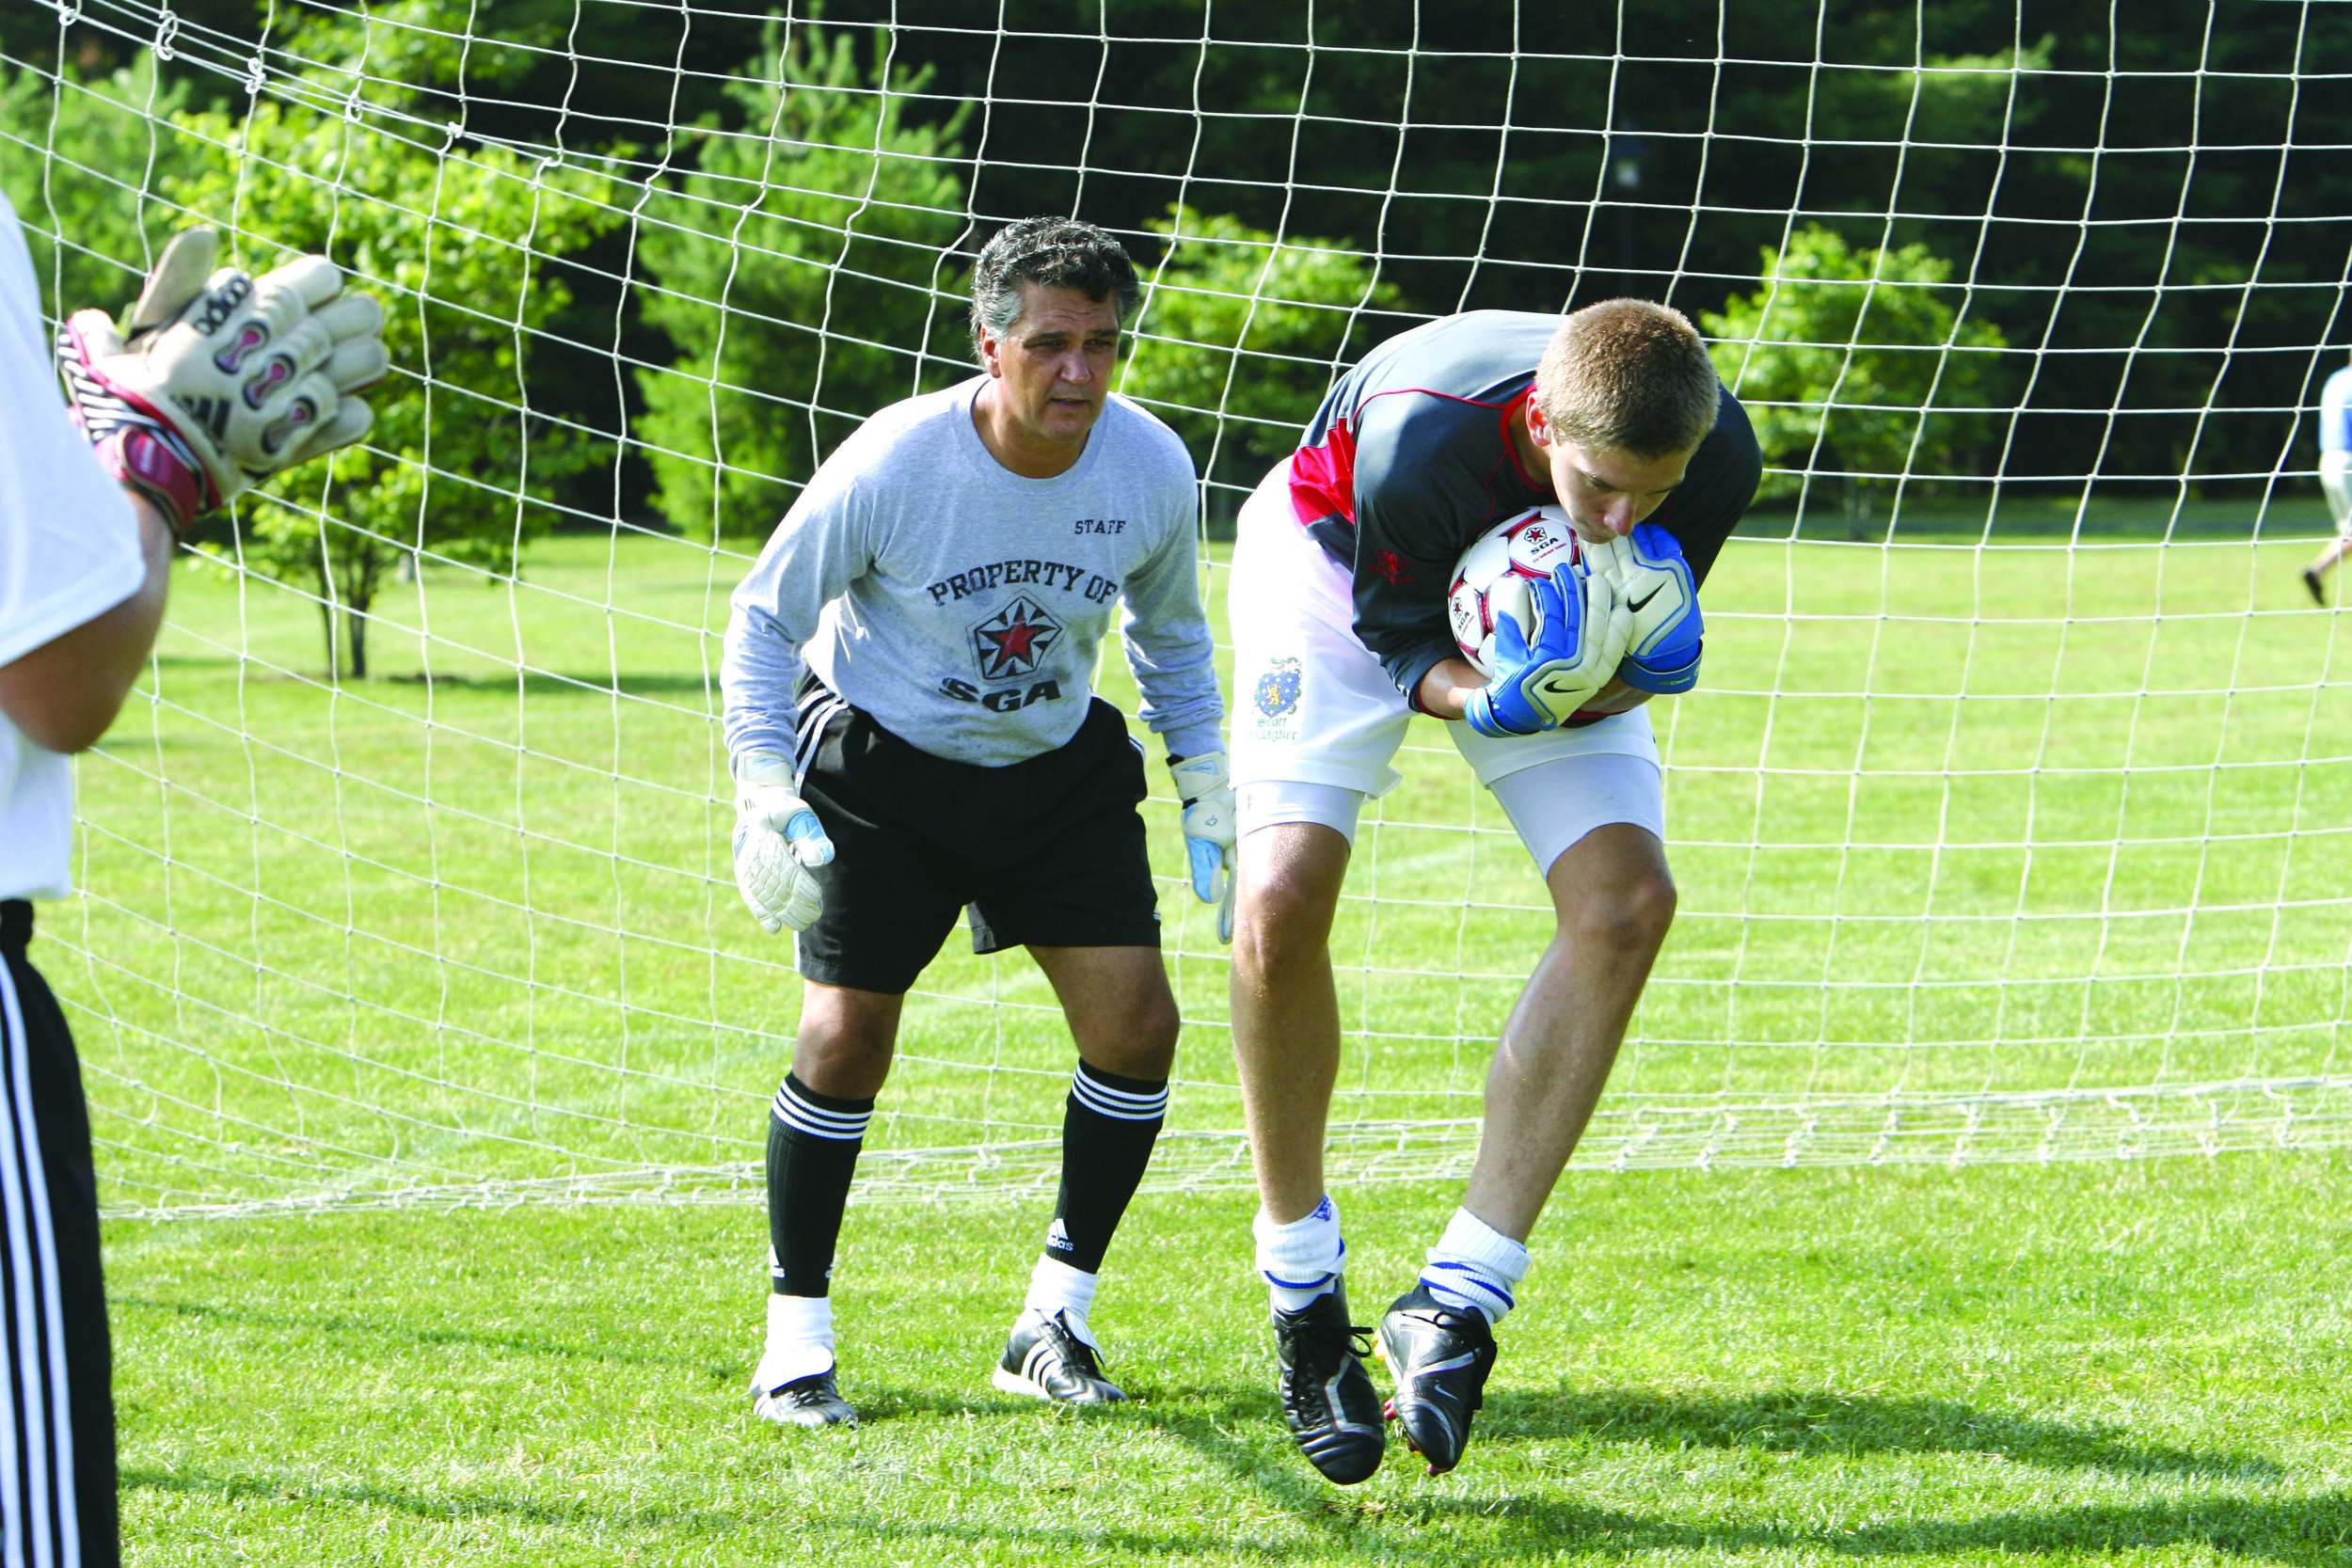 SGA ADVANCED ACADEMY  Ages 15-18 | Co-ed | Residential | $850  Level:  Intermediate & Advanced   Sessions:   July 21-25 | July 28-Aug1 | August 4-8  This program is designed for college-bound goalkeepers who have mastered the foundations of goalkeeping. Advanced Academy utilizes unique training equipment and a specific goalkeeper fitness program designed to challenge its participants will be conducted early in the morning.